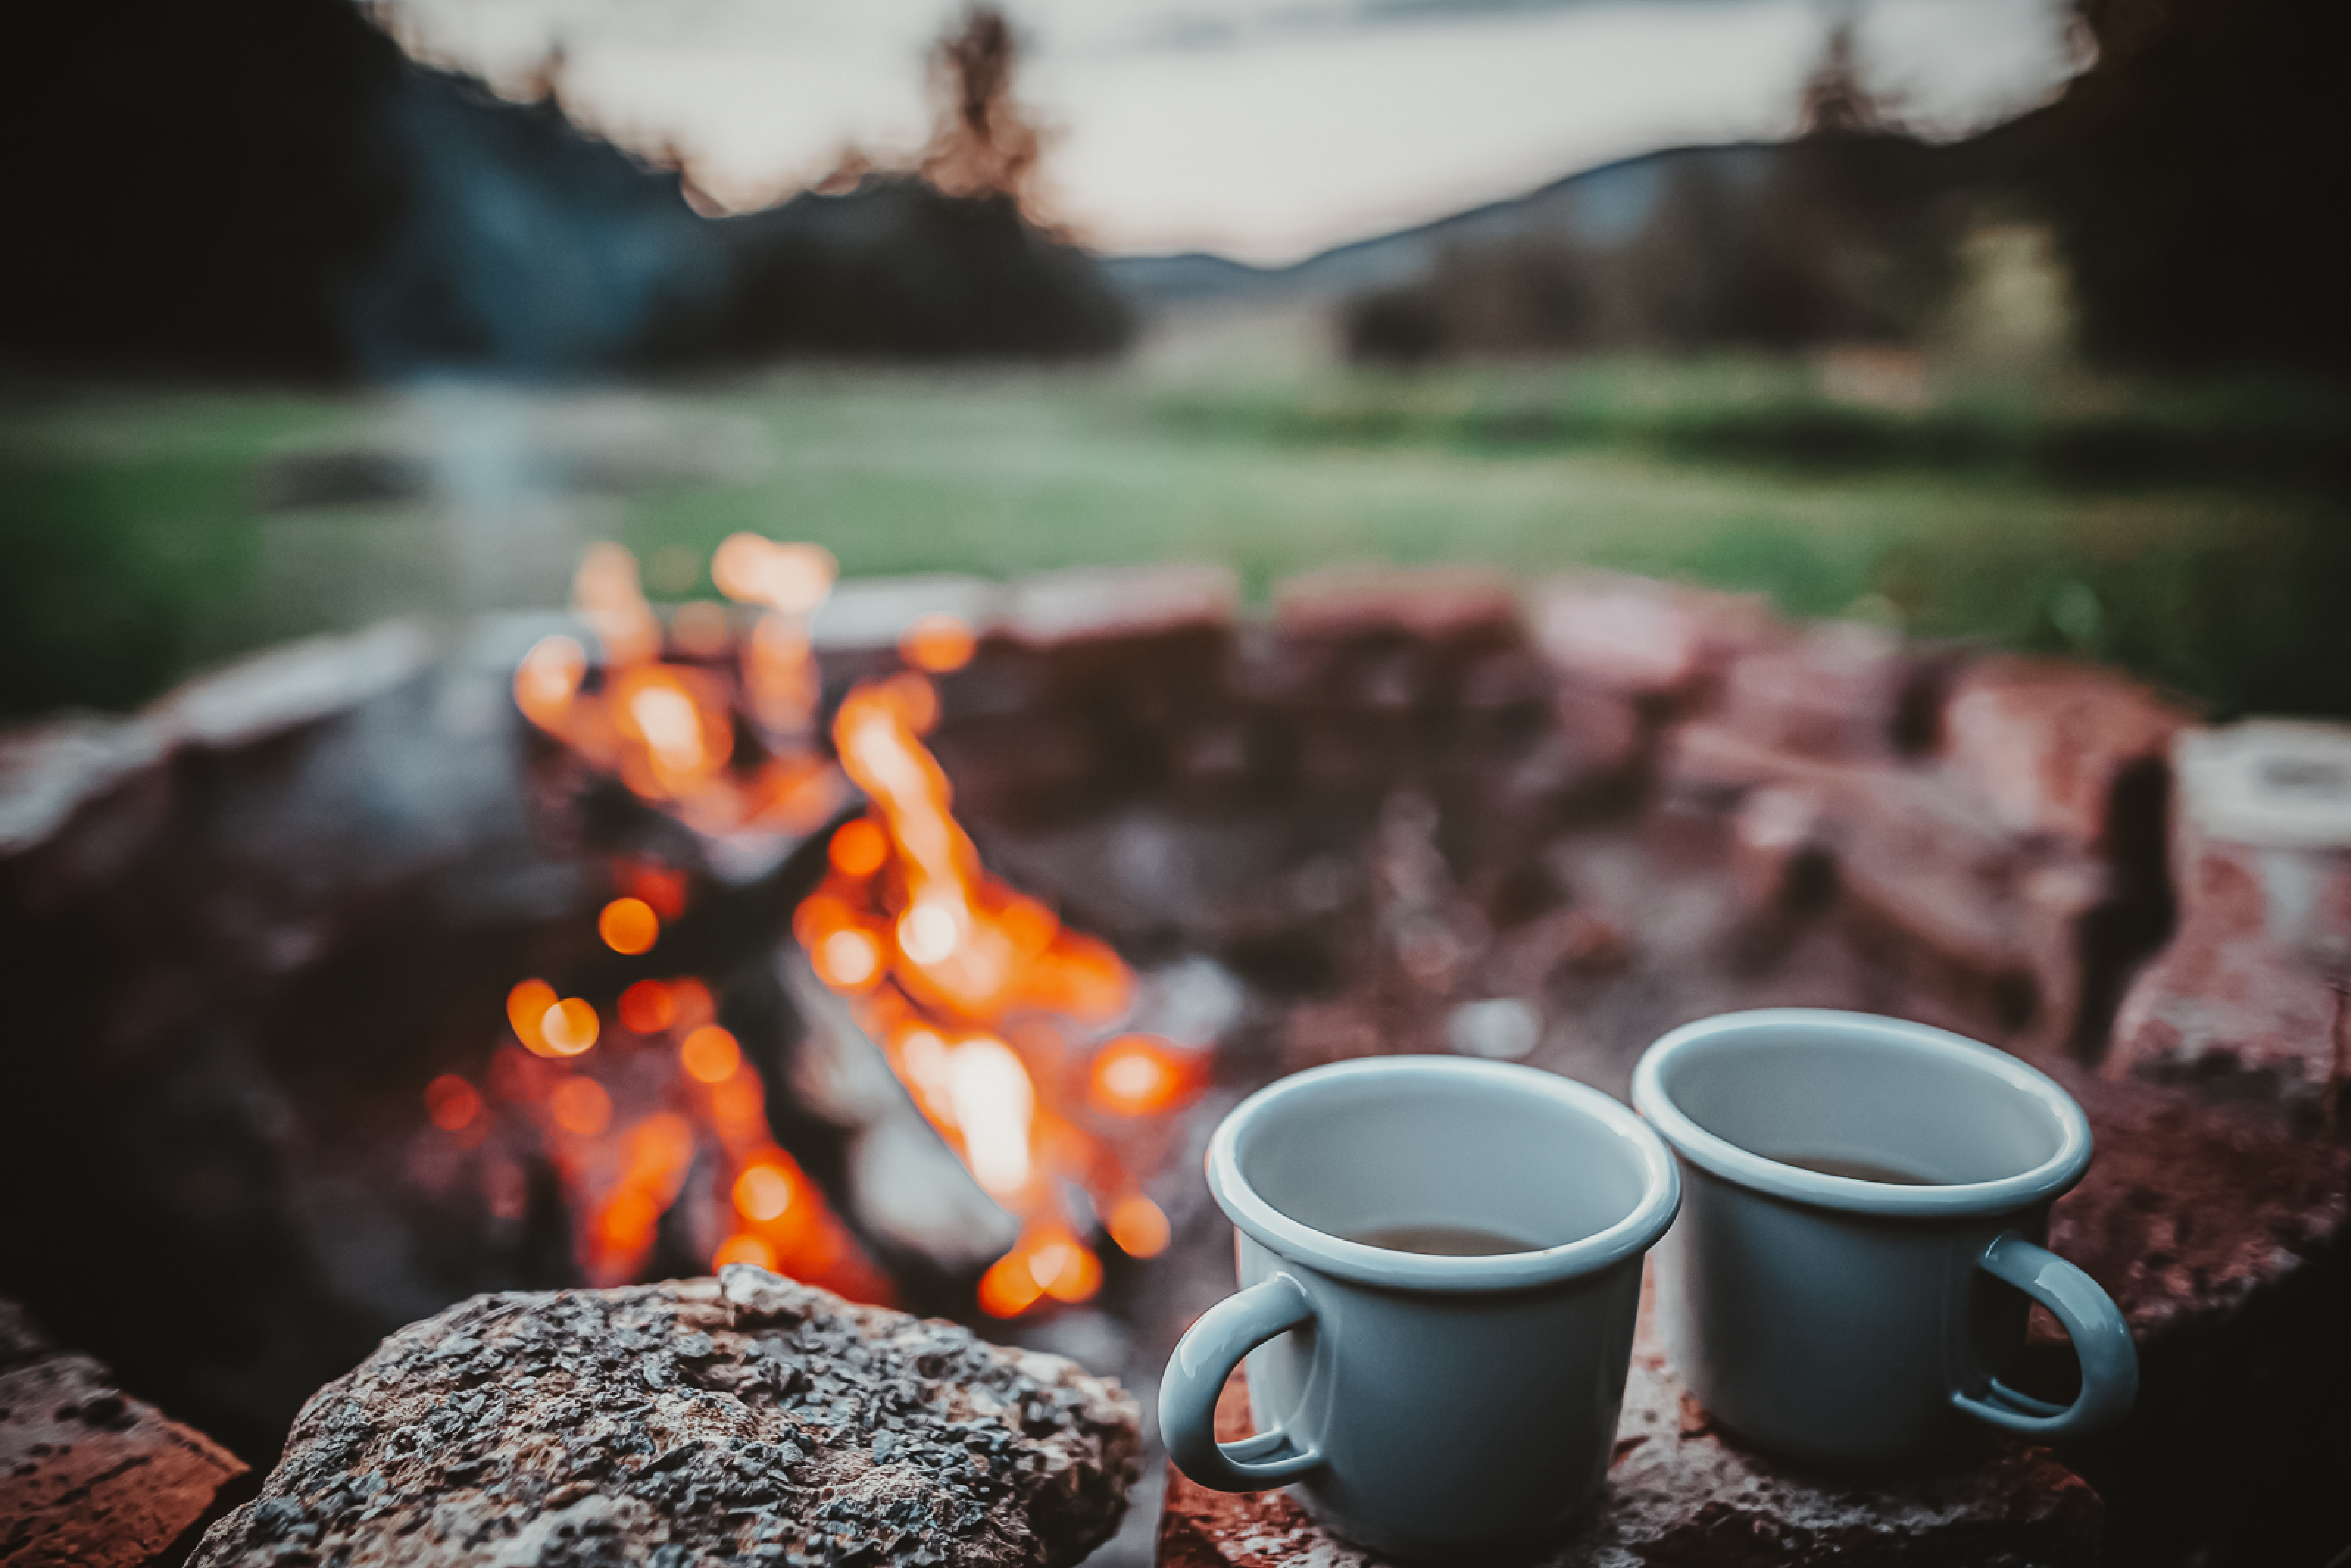 Coming soon: Our primitive campsites give you the full experience of the outdoors.